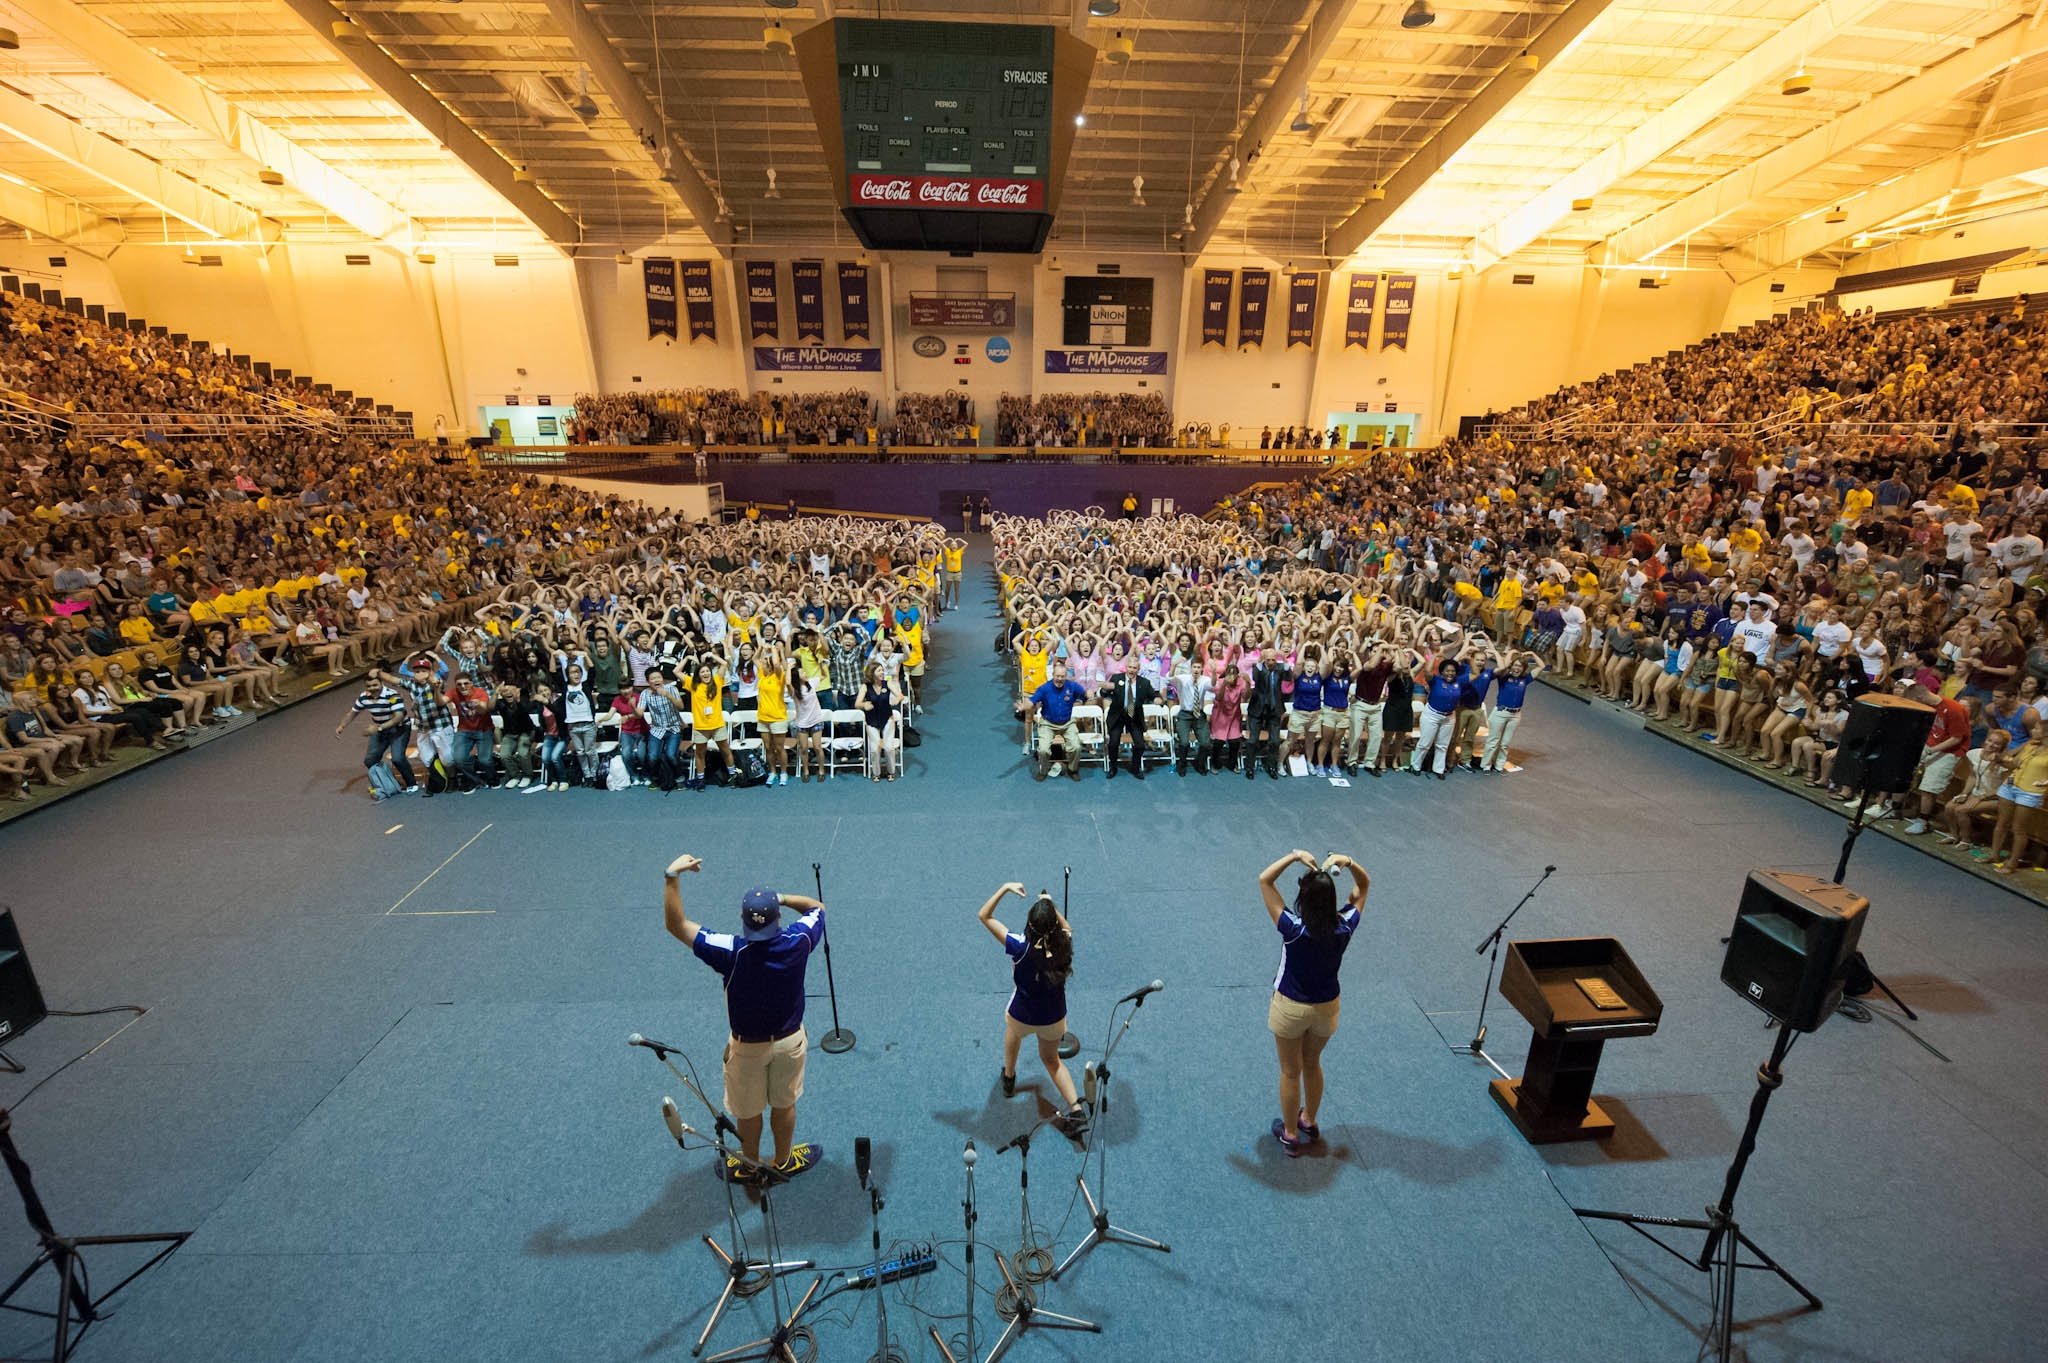 4500 students in JMU Convocation Center, middle section making